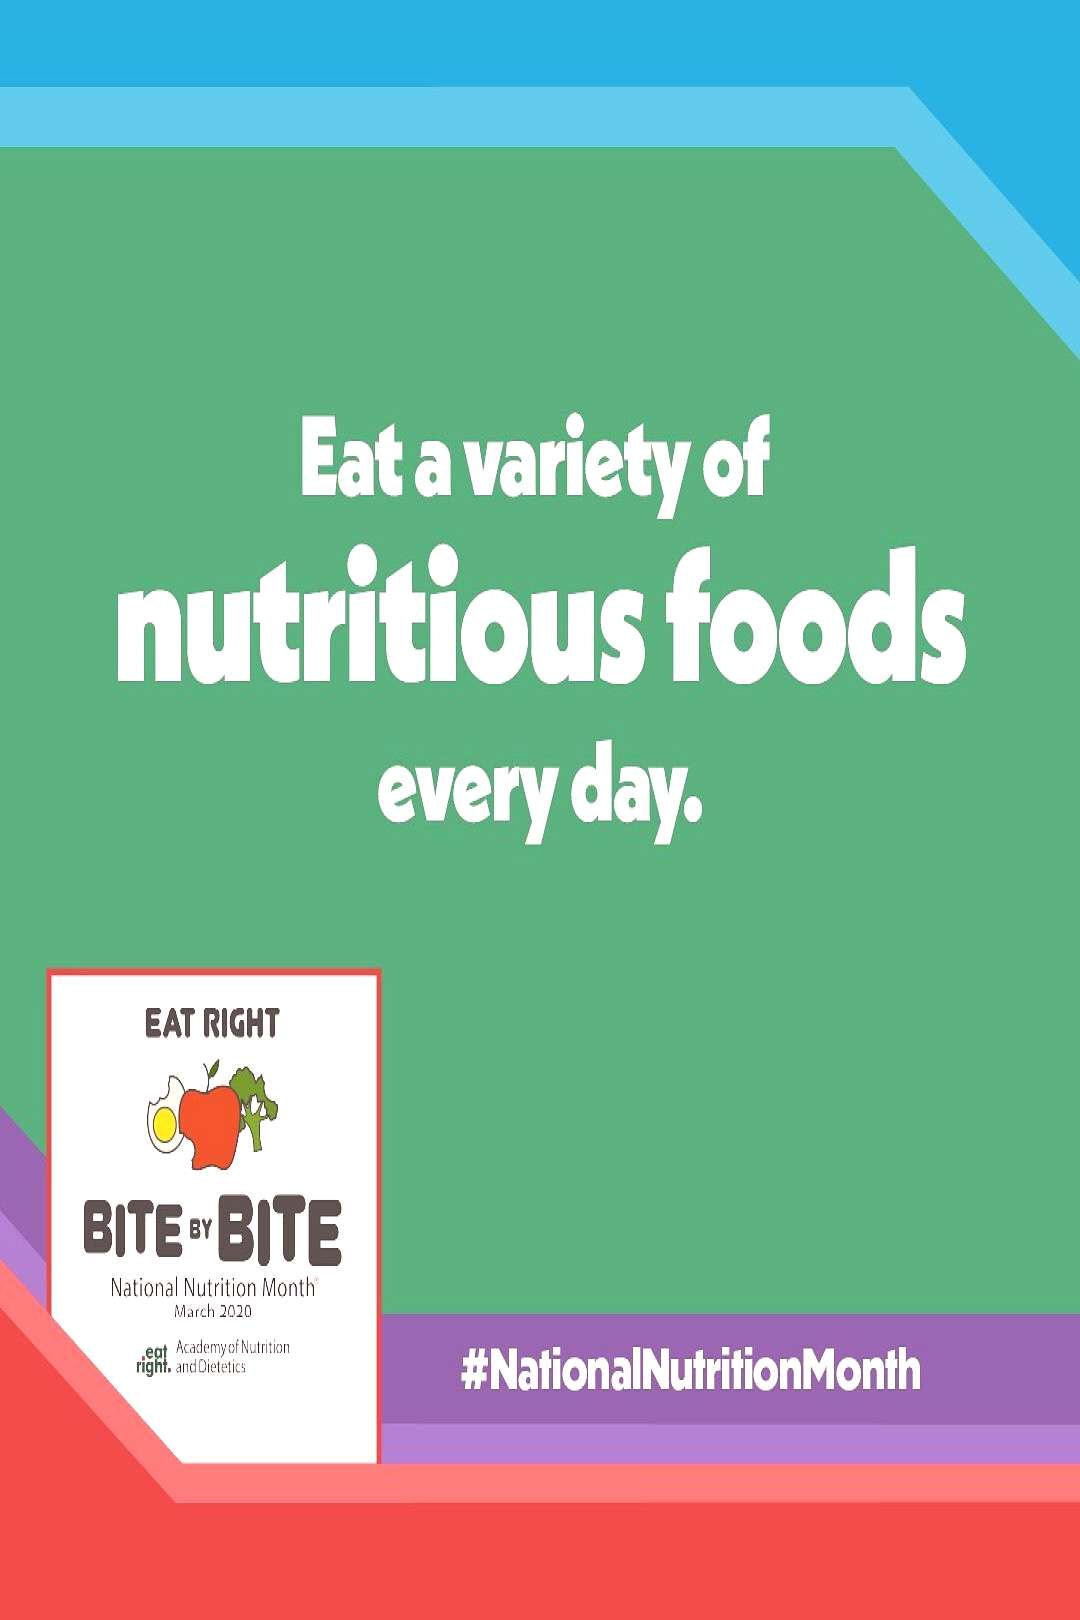 Photo by Medical Nutrition Network, LLC on March 04, 2020.